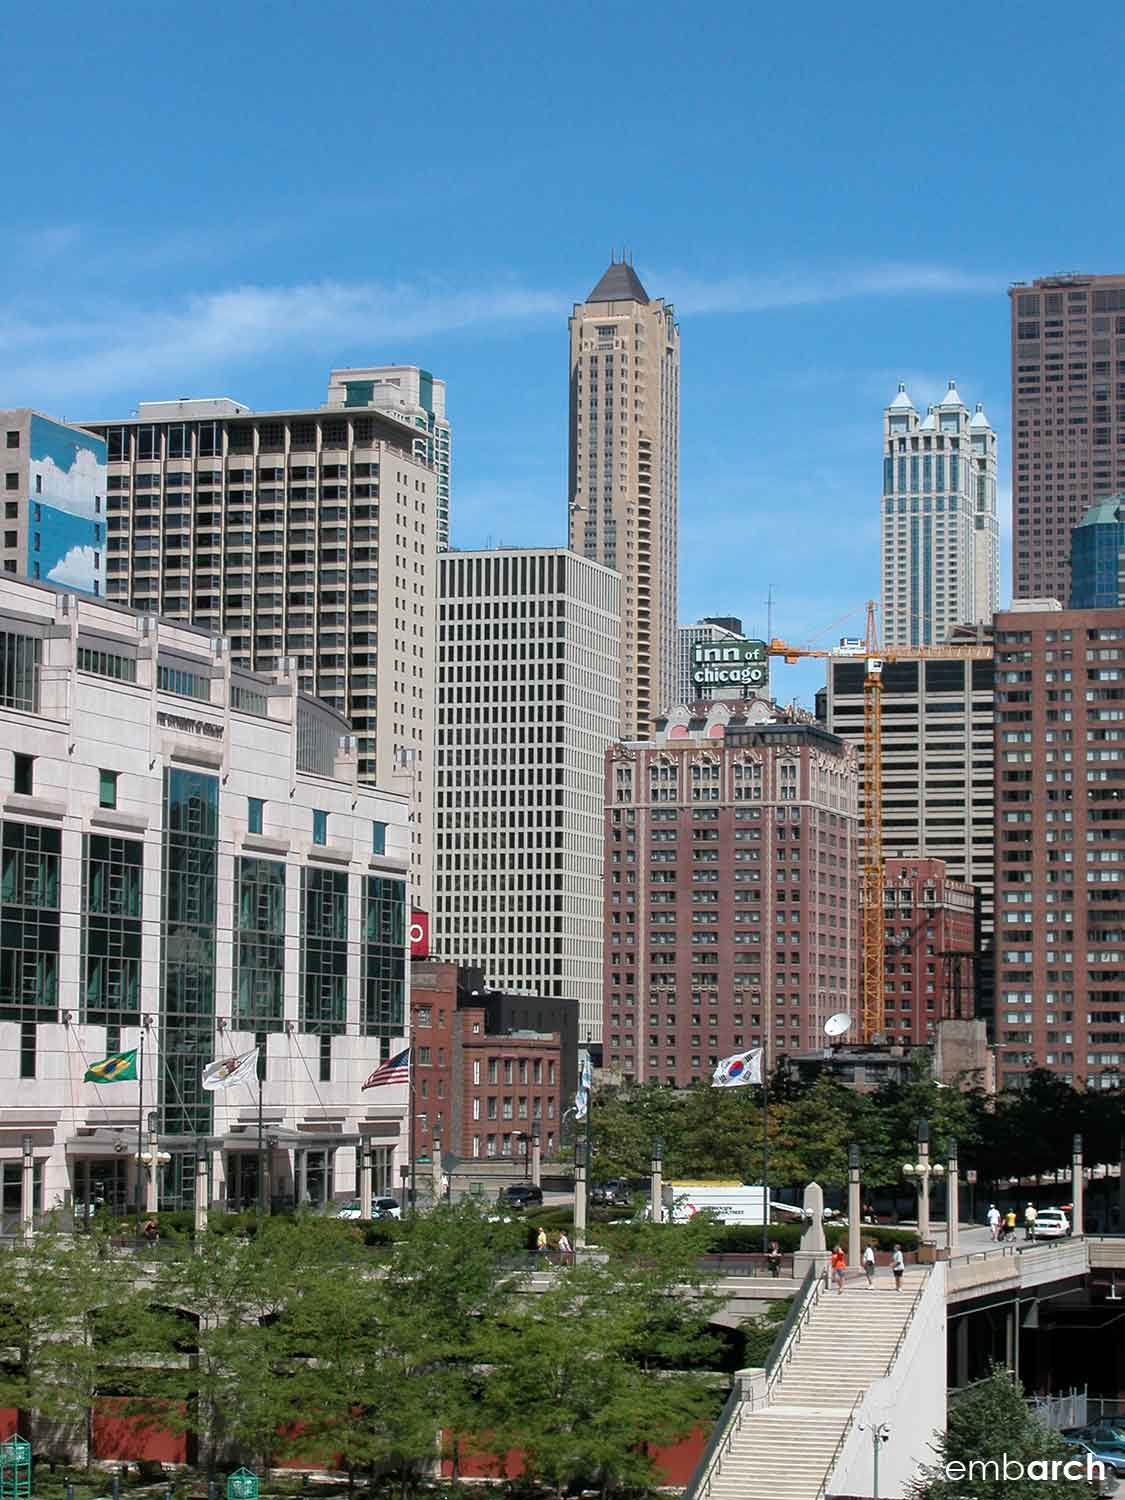 A view of Streeterville from the Chicago River.